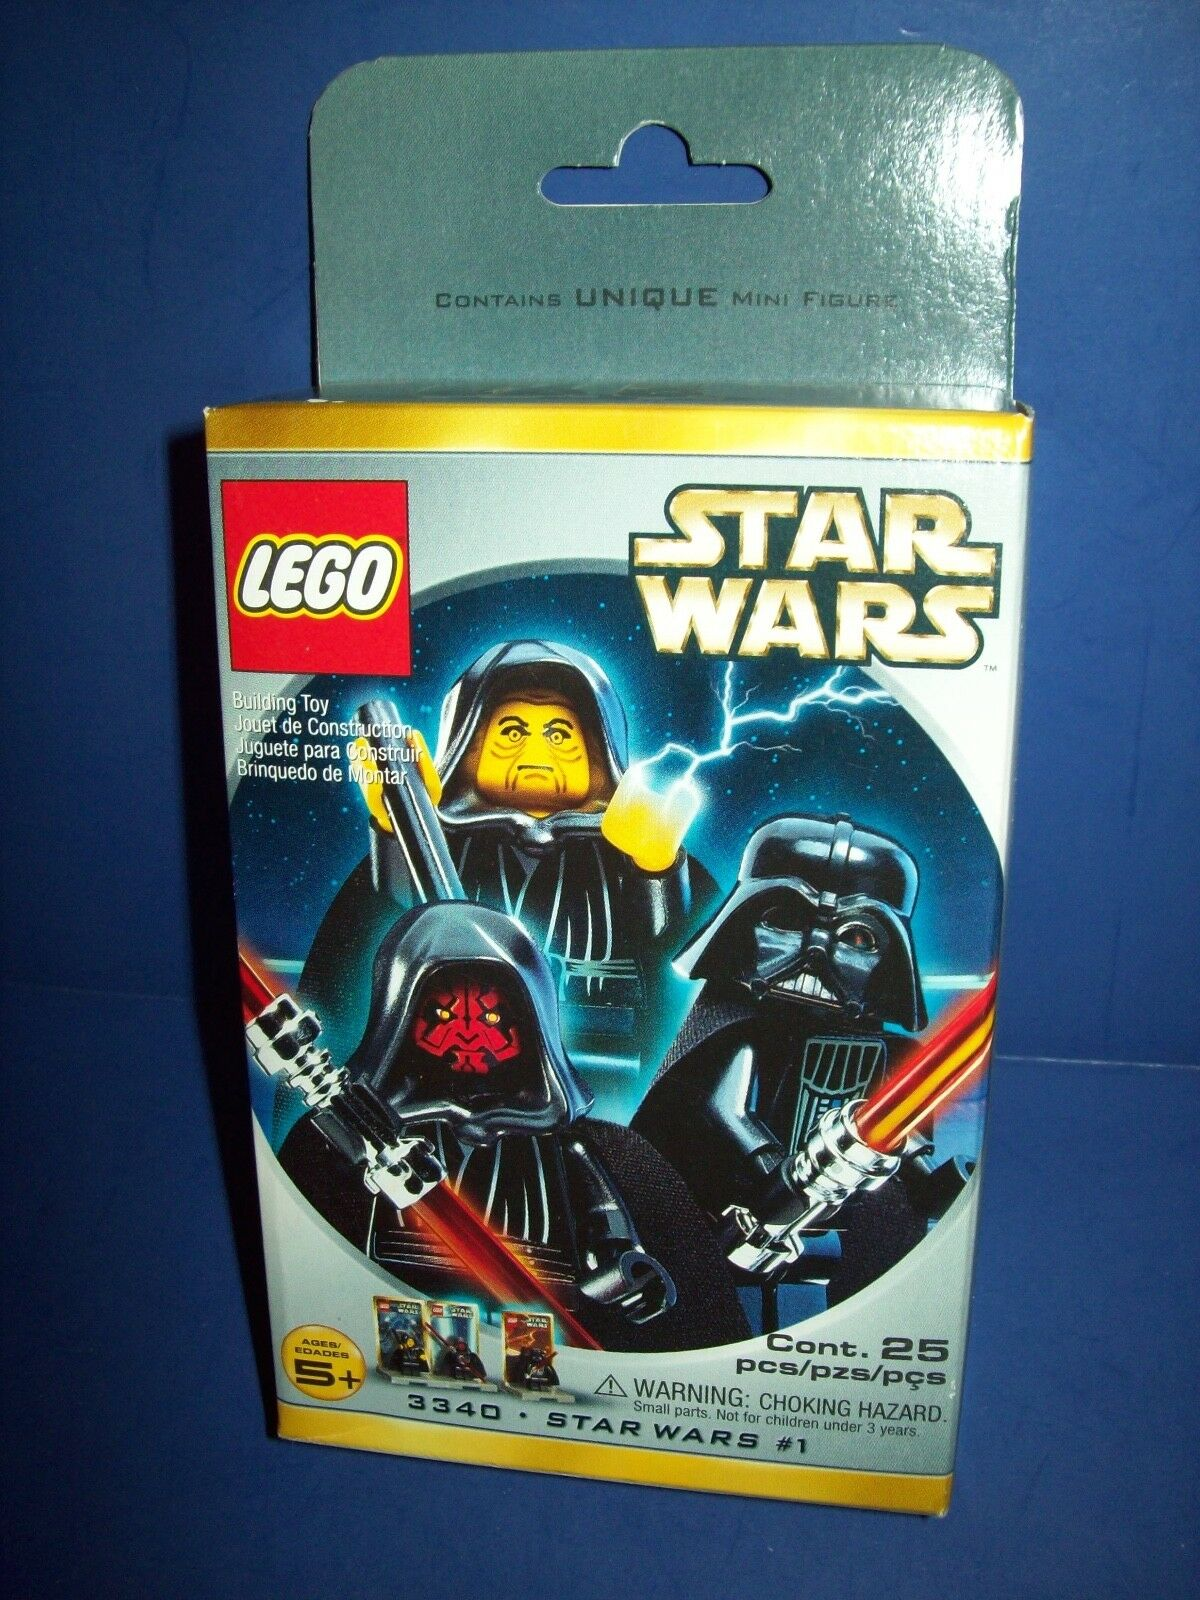 Lego Star Wars  1 (1018) 3340 NEW Factory Sealed HTF Darth Vader Palpatine Maul